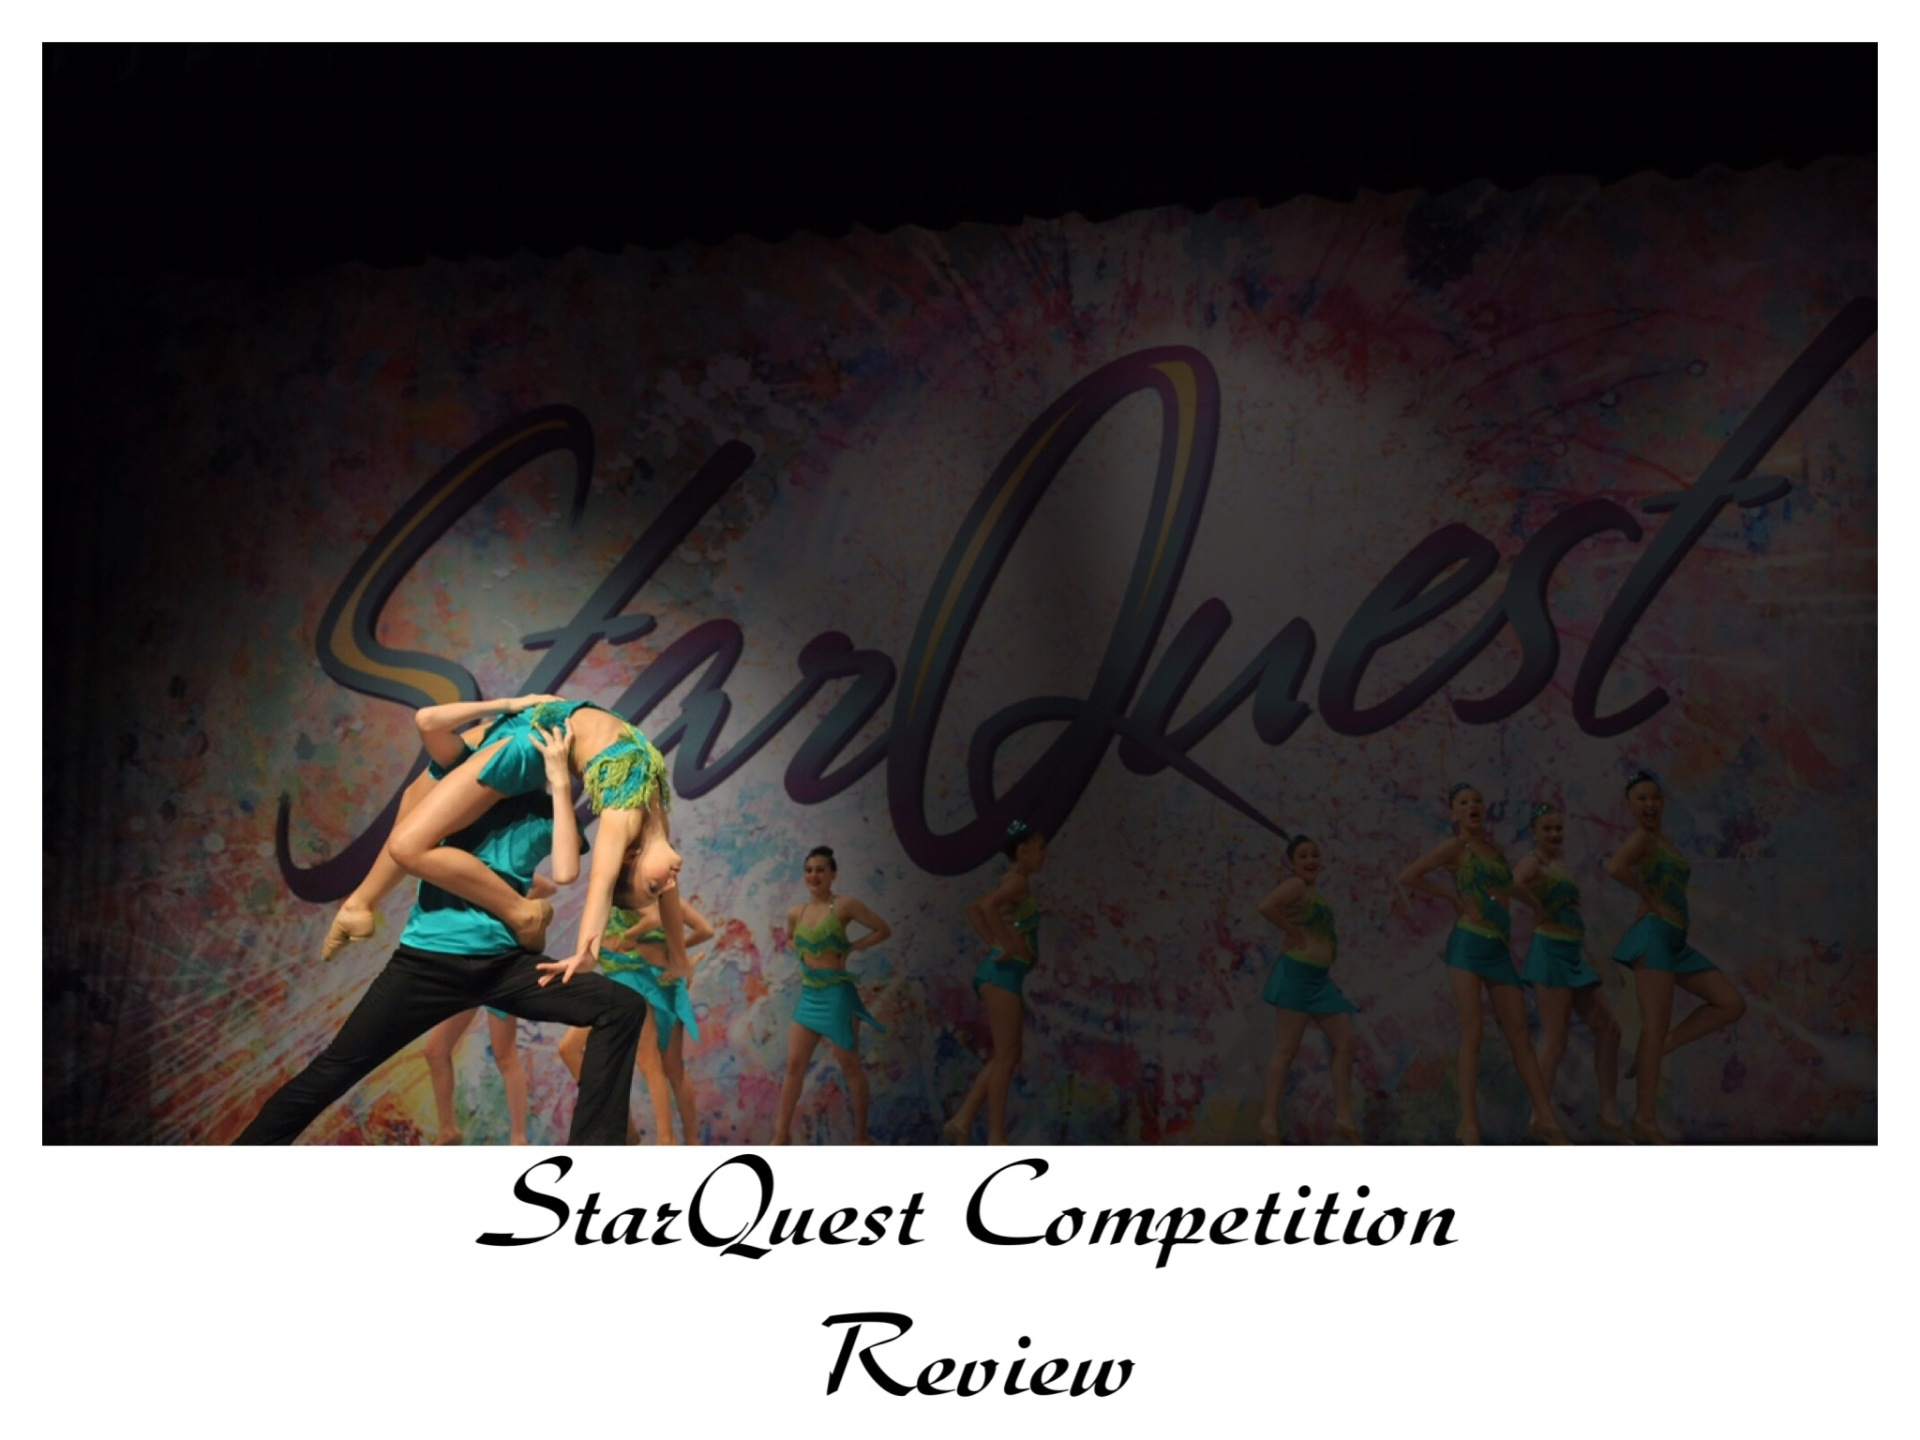 StarQuest Compeition Review